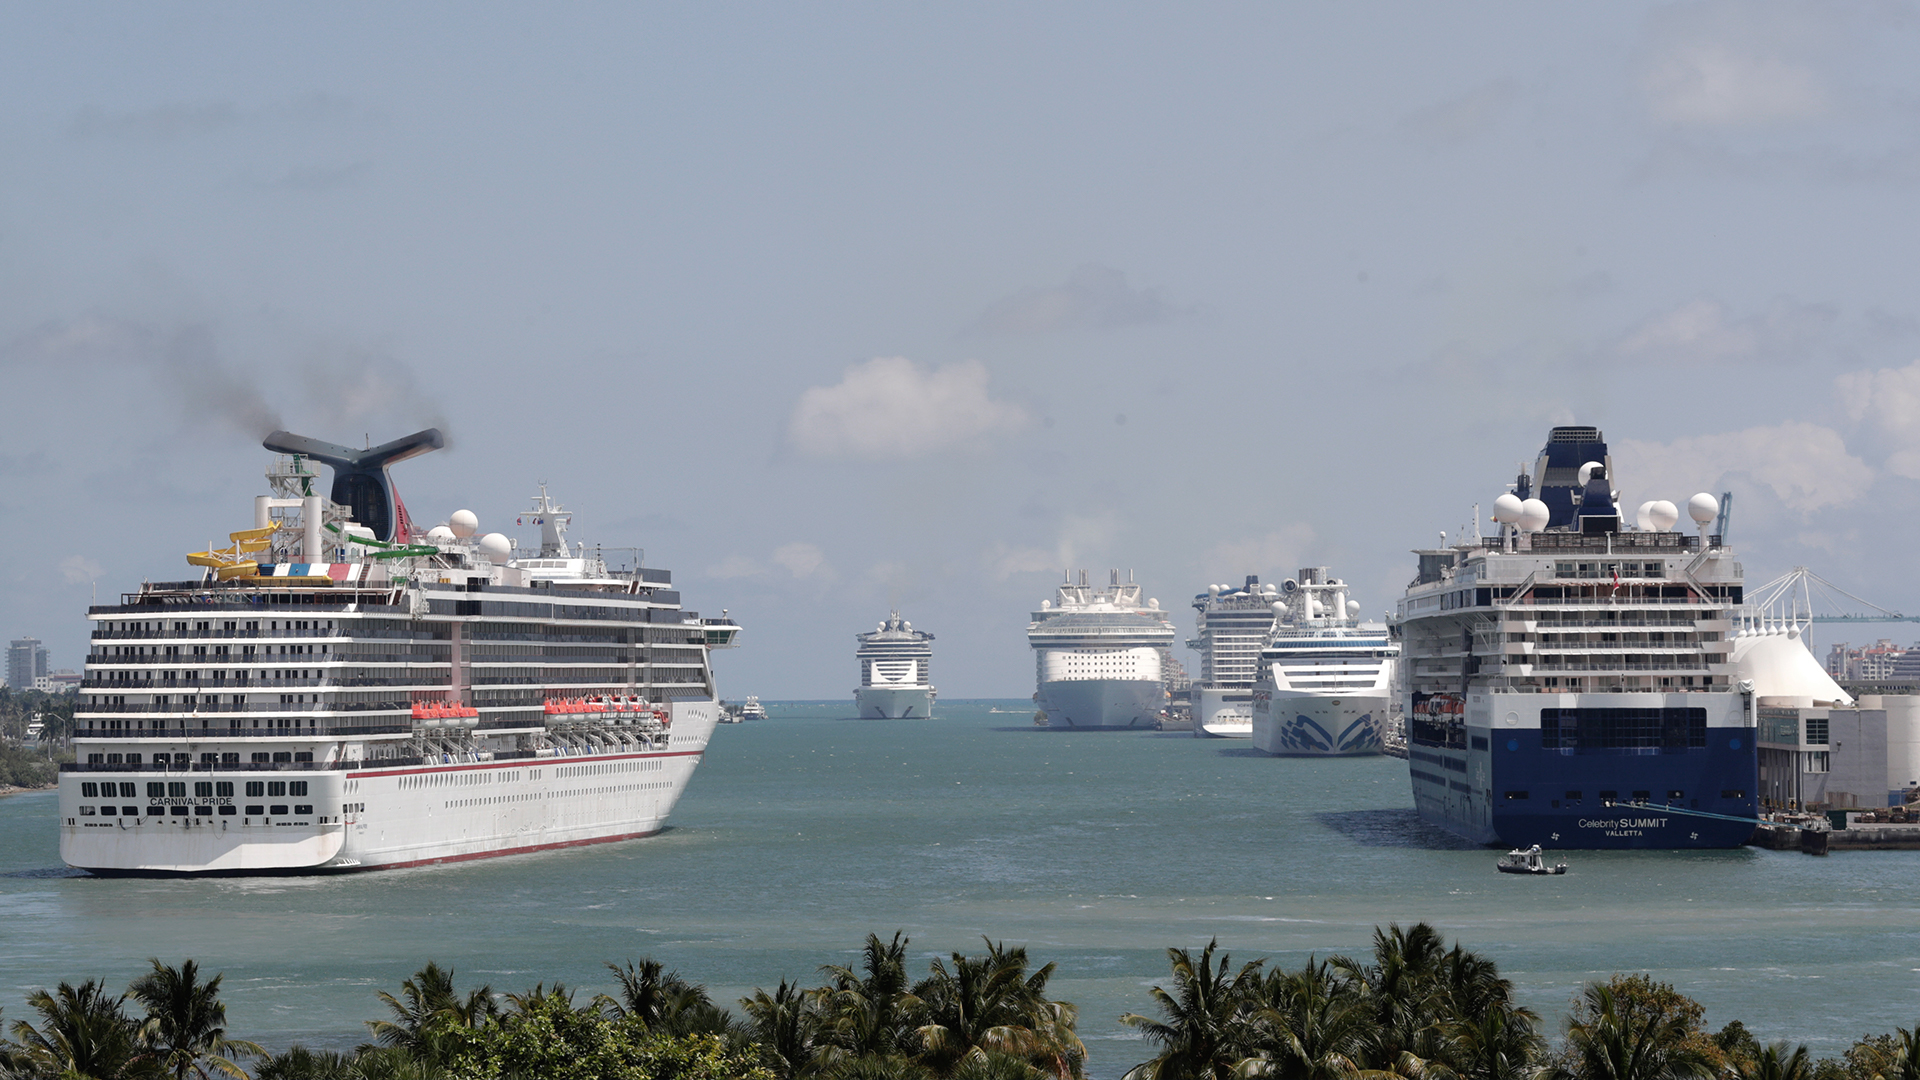 Florida Cruise Ships Stay Docked With No Settlement In Battle Over Vaccine Passports Wrbl